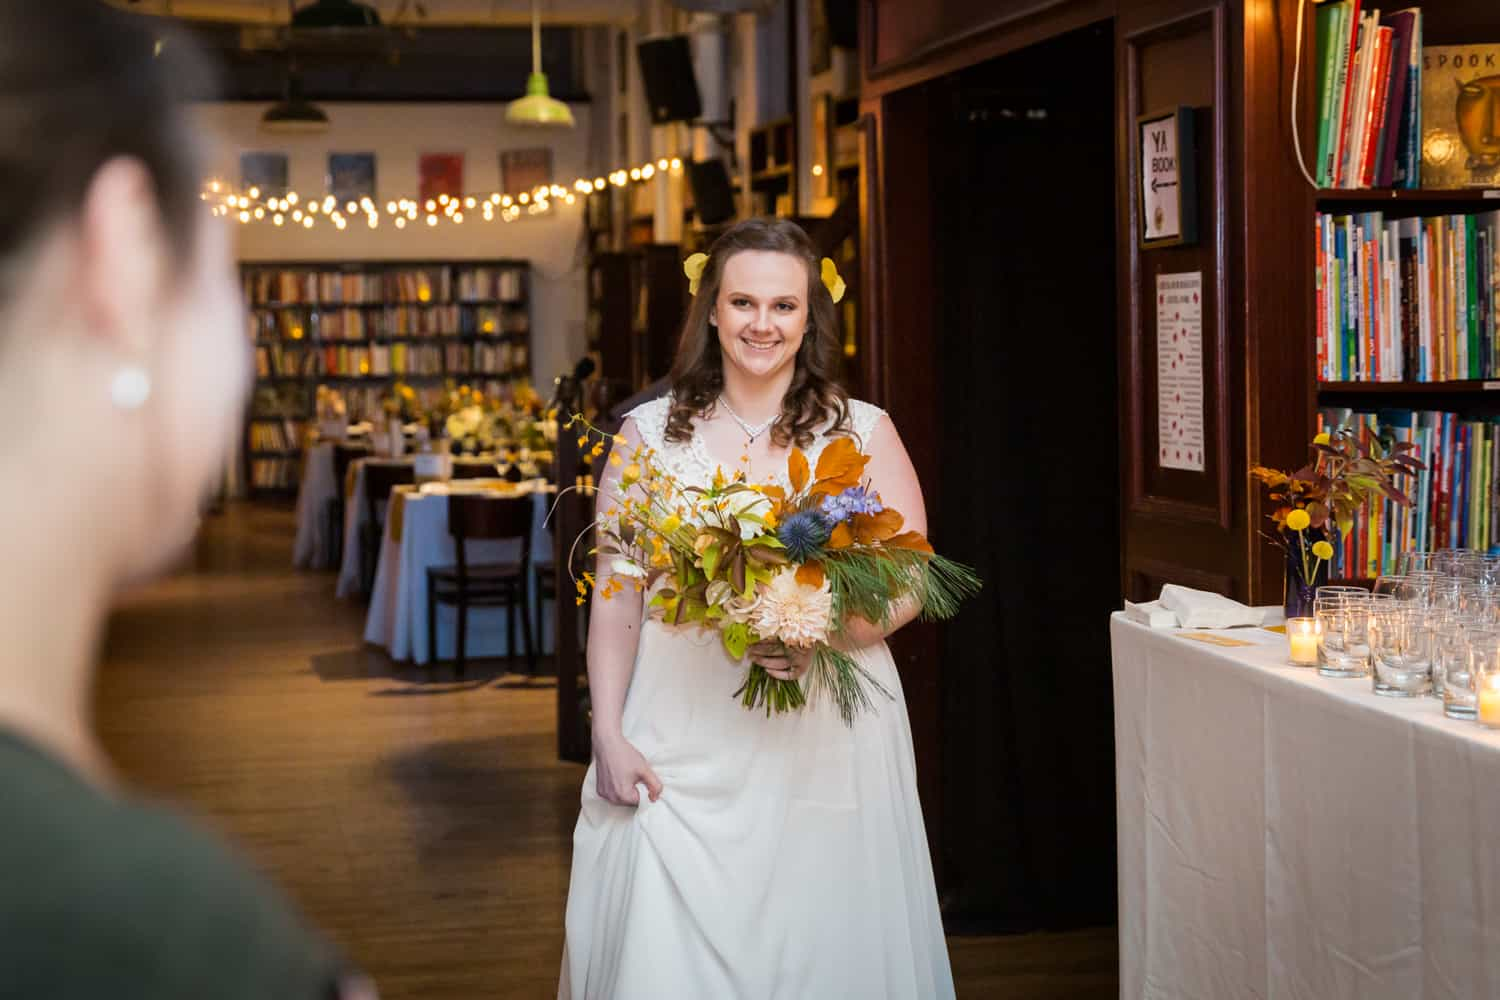 Bride holding bouquet and walking down aisle for an article on Covid-19 wedding planning